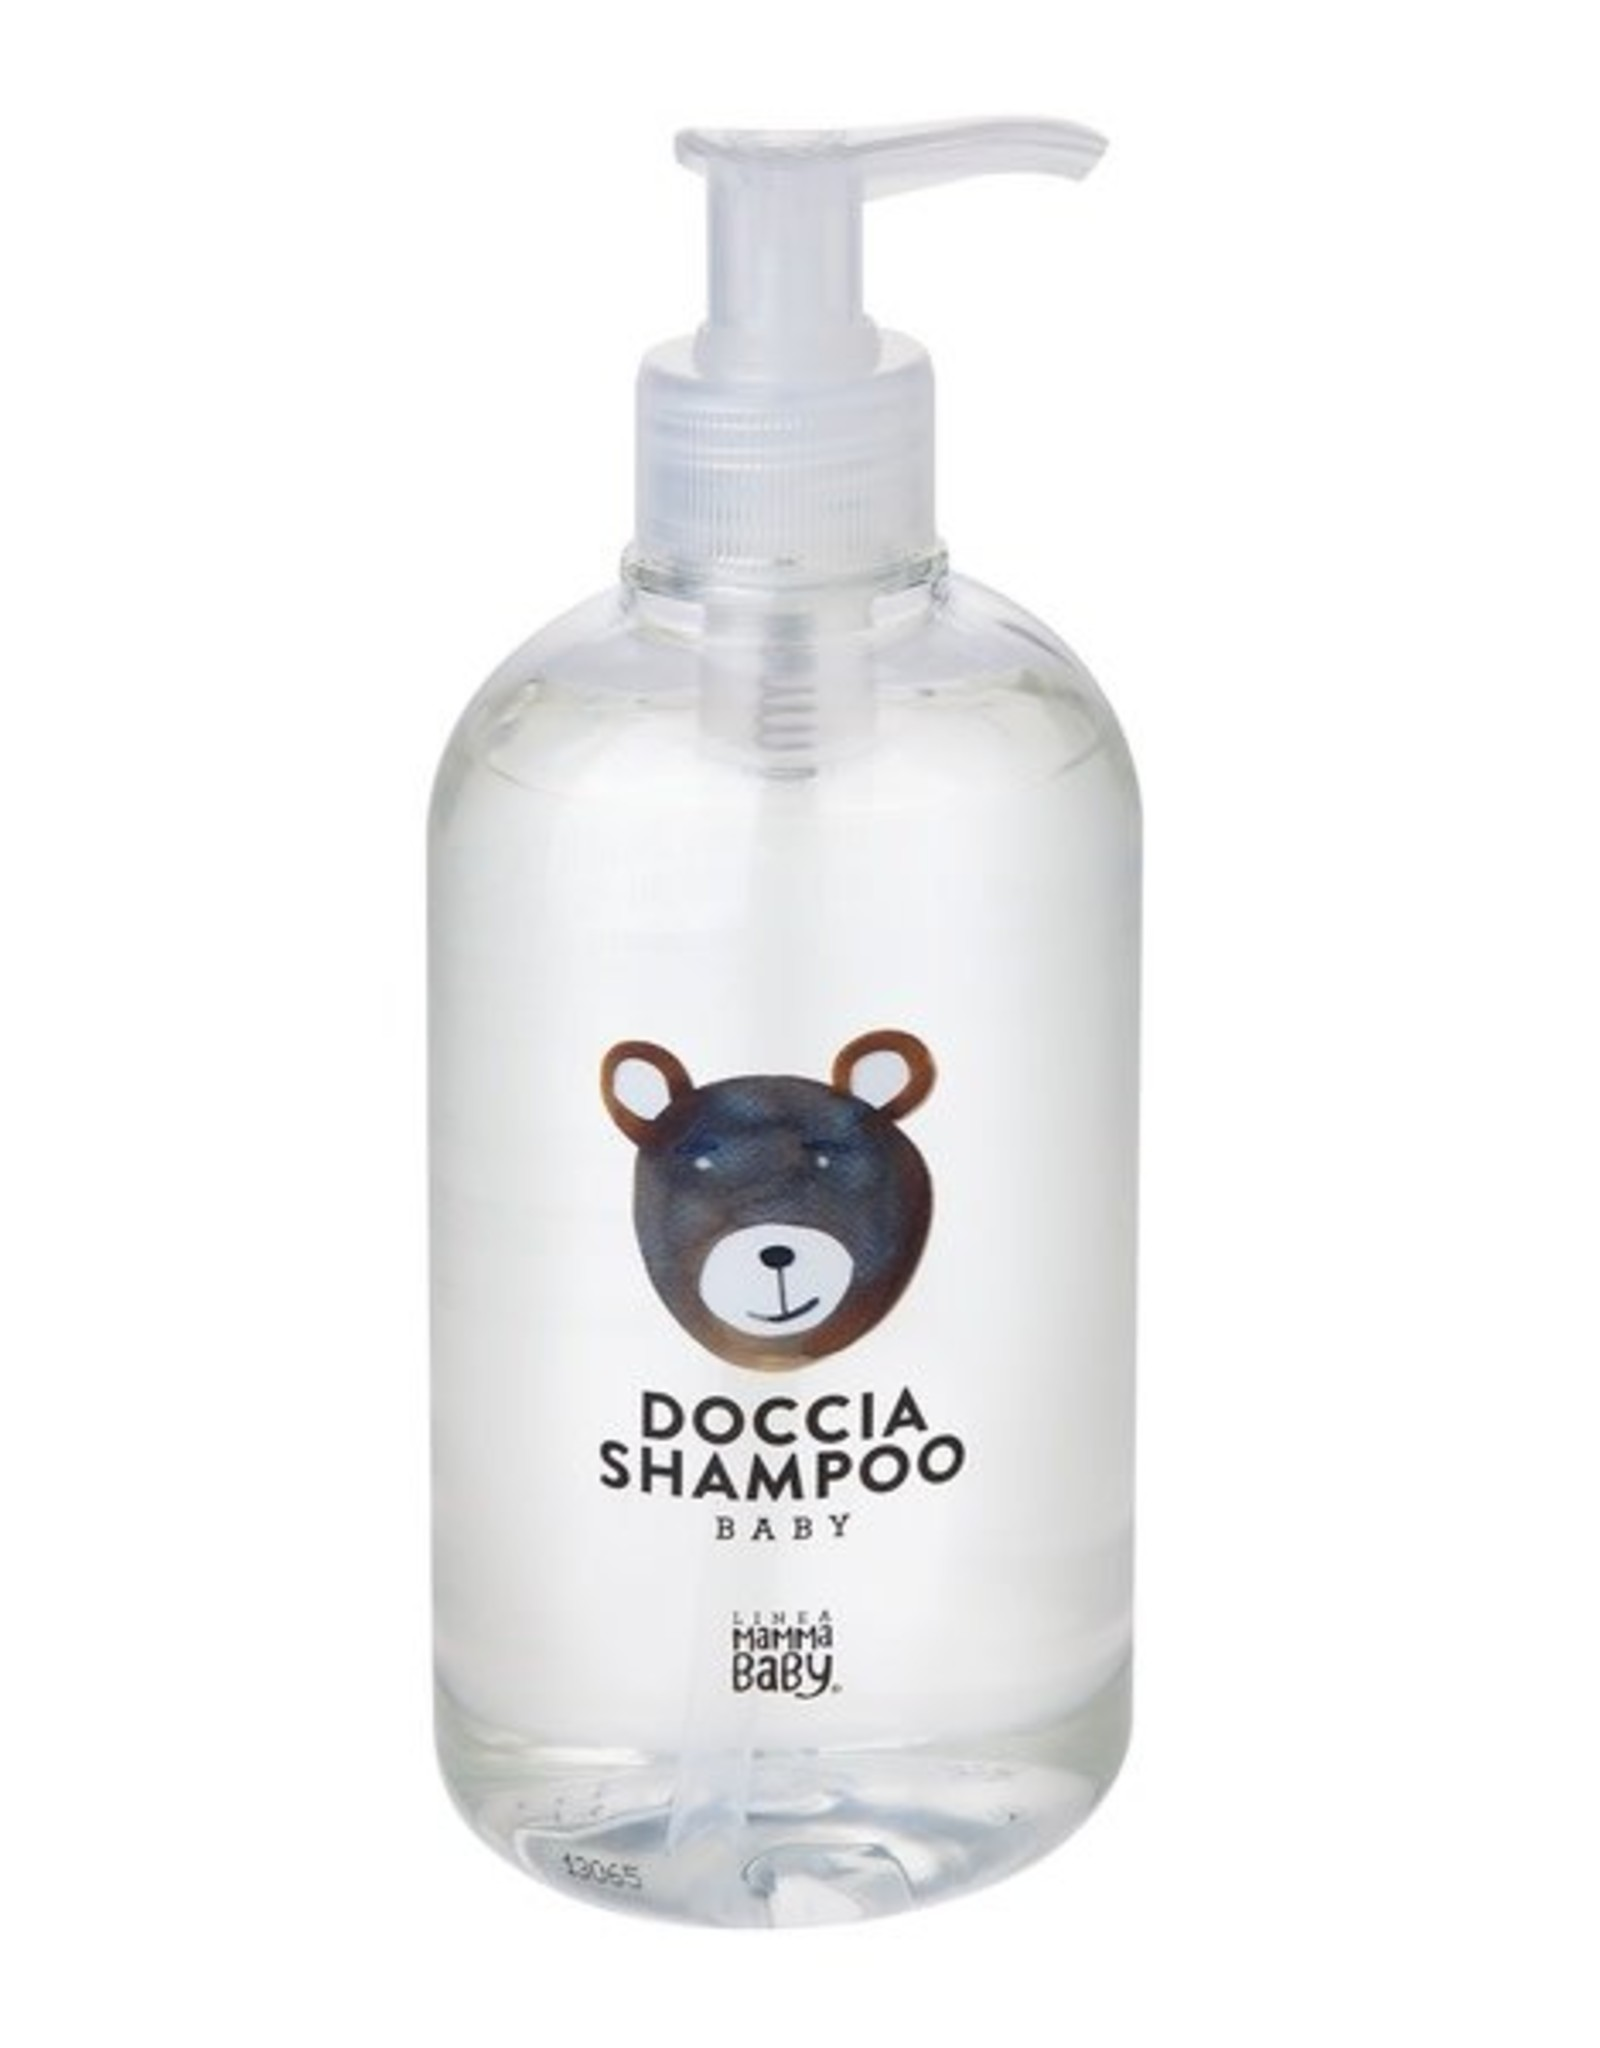 Linea MammaBaby Linea MammaBaby baby shampoo & shower gel 500ml